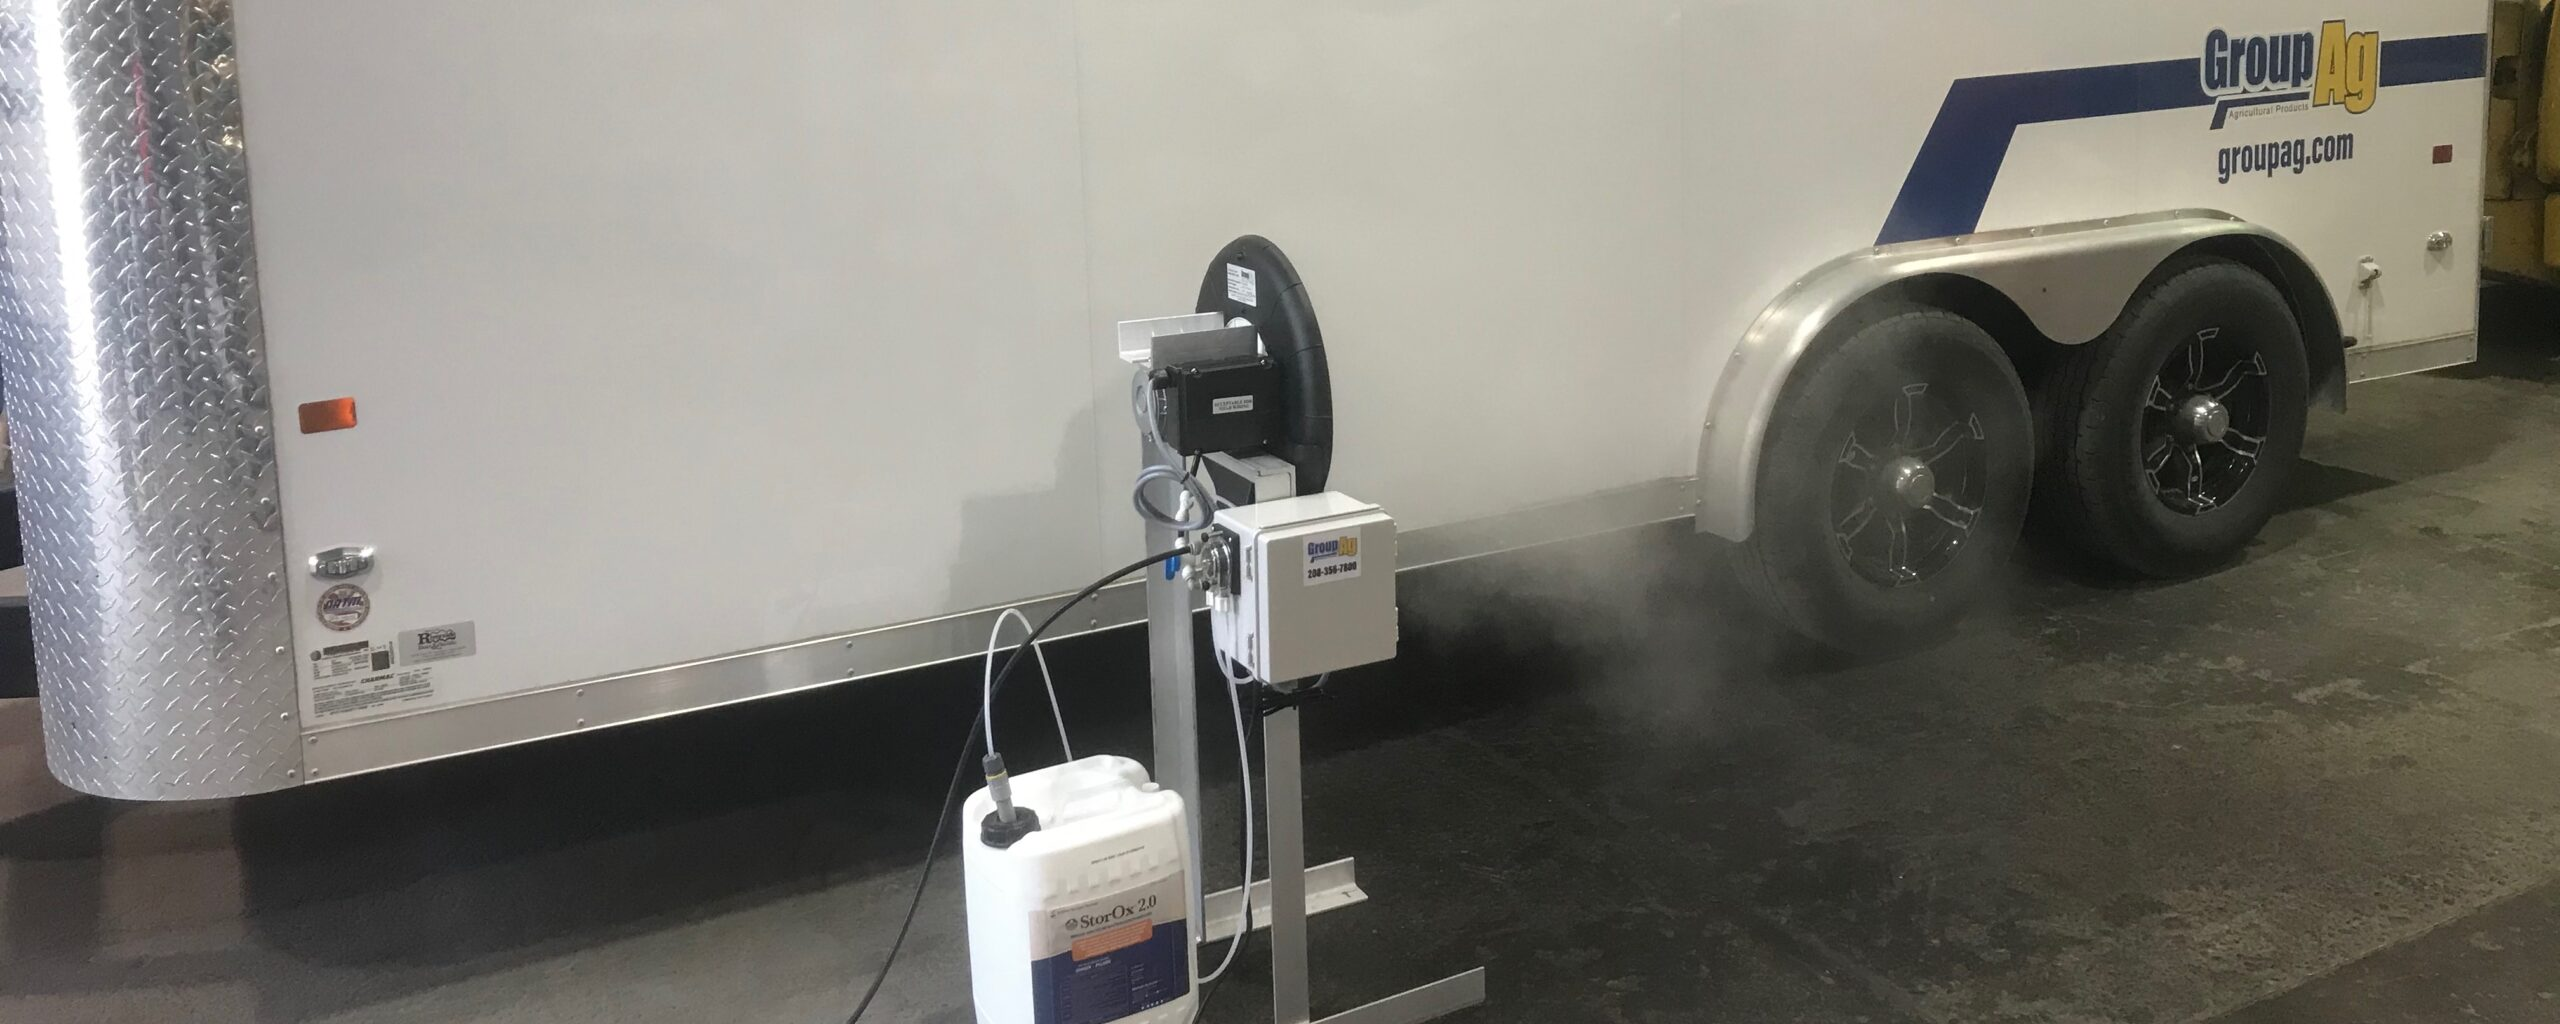 GroupAg humidifier CleanFlow